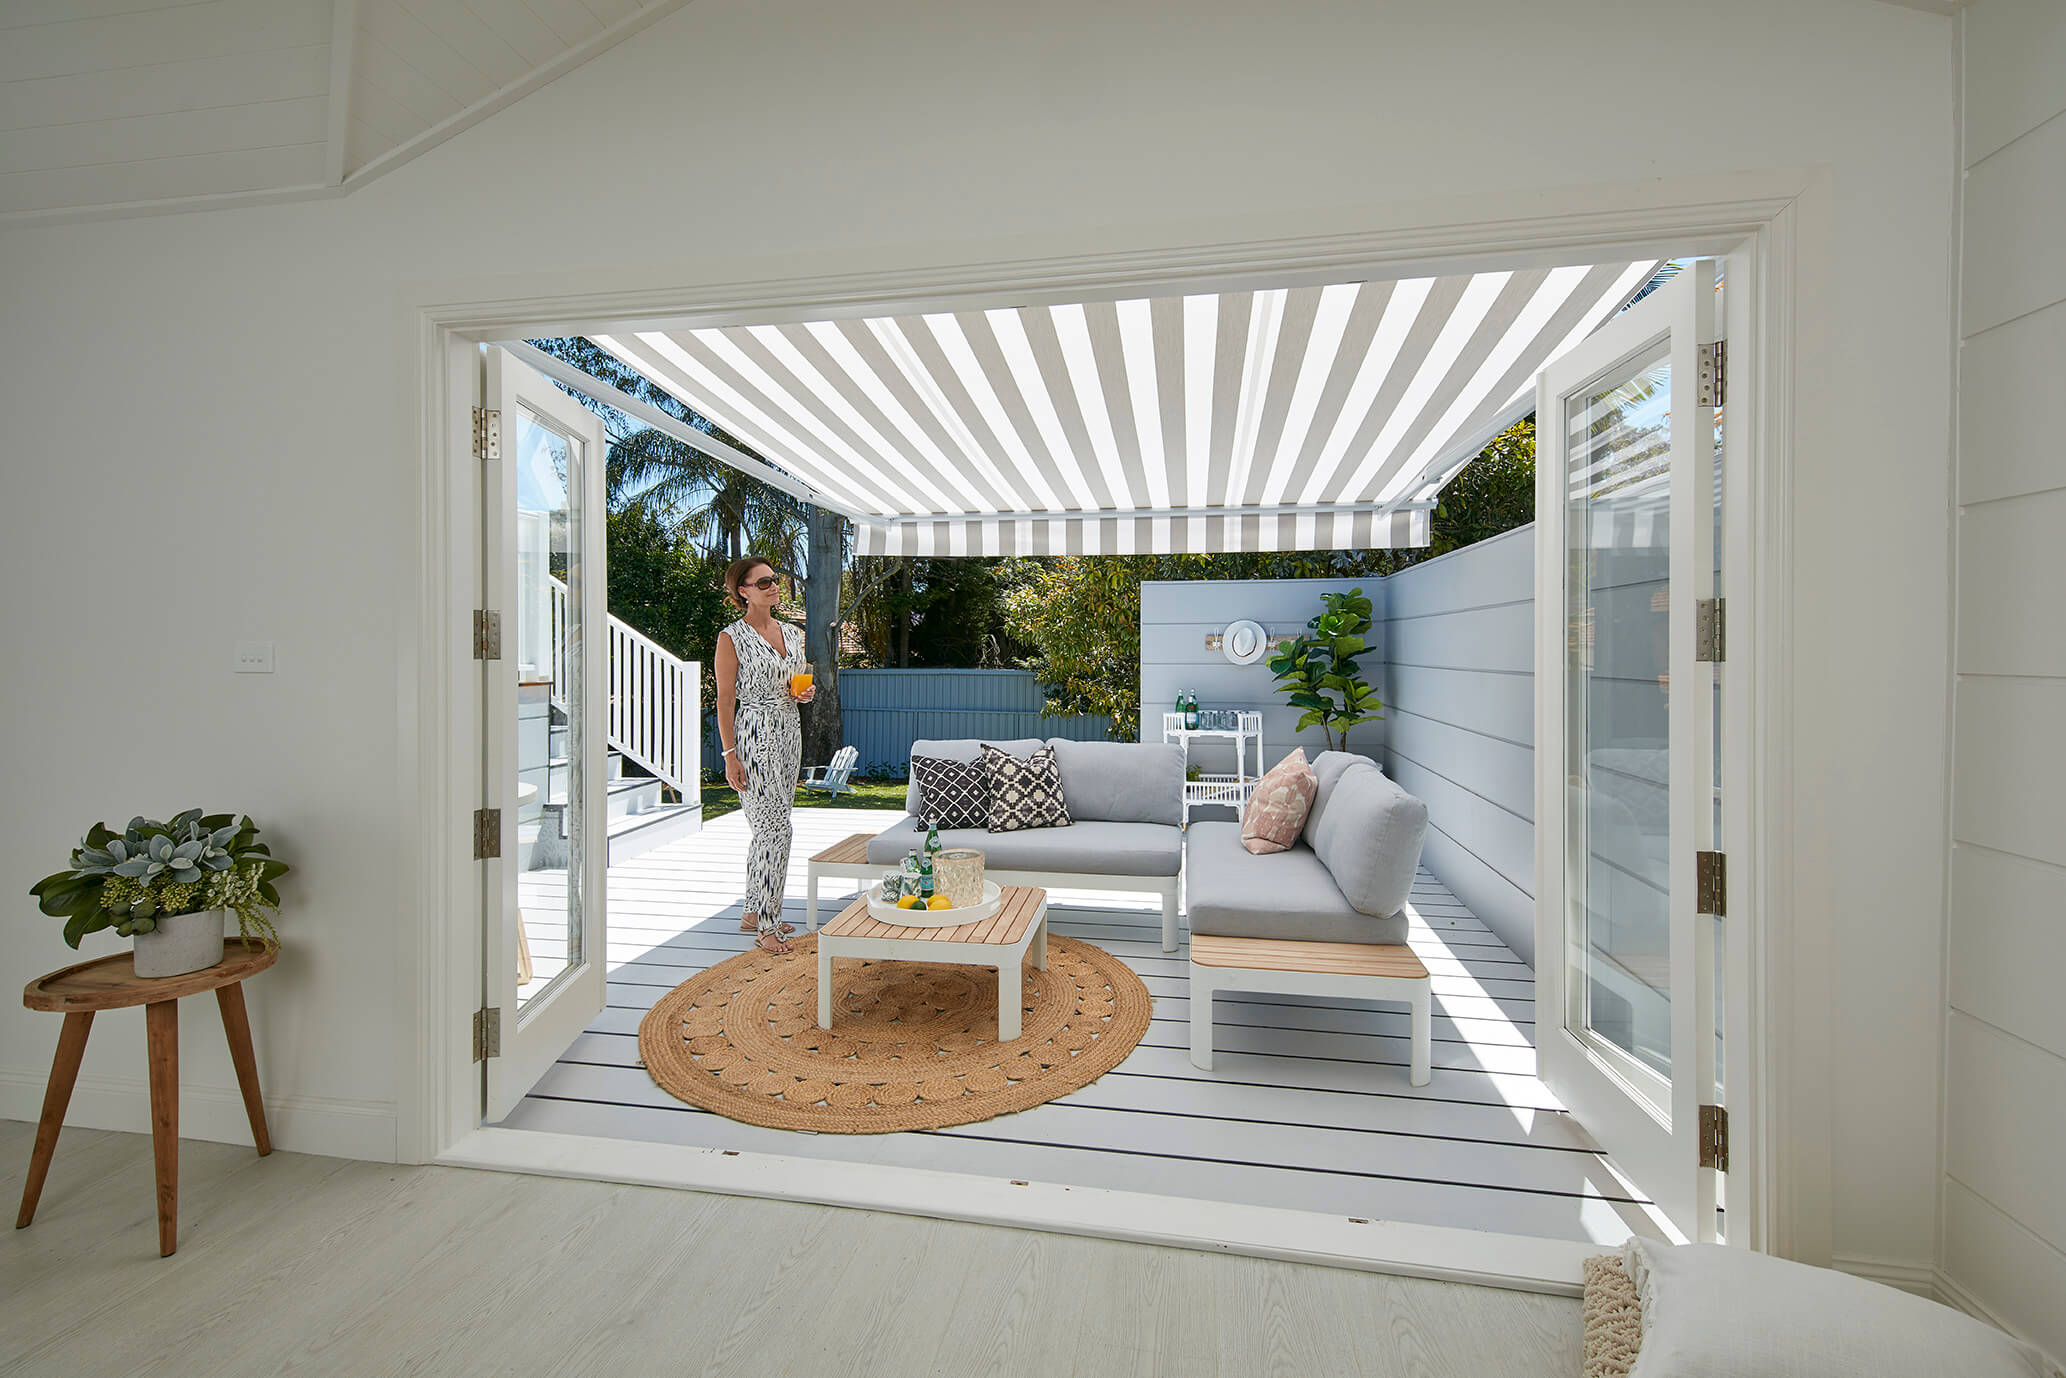 Folding-arm-awning-from-inside